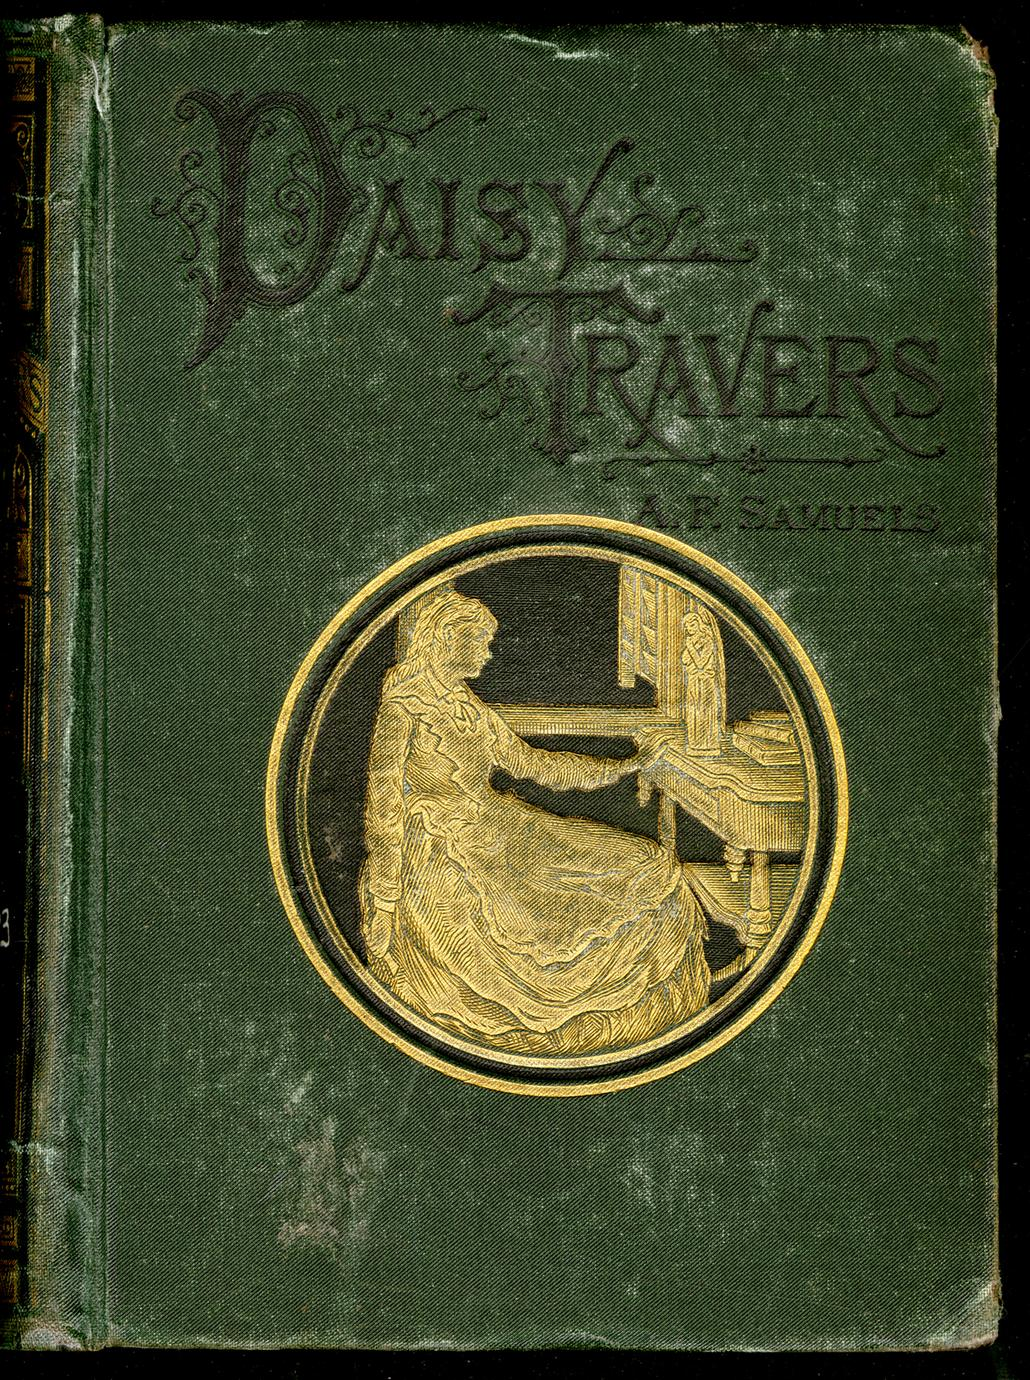 Daisy Travers; or, The girls of Hive Hall (1 of 3)